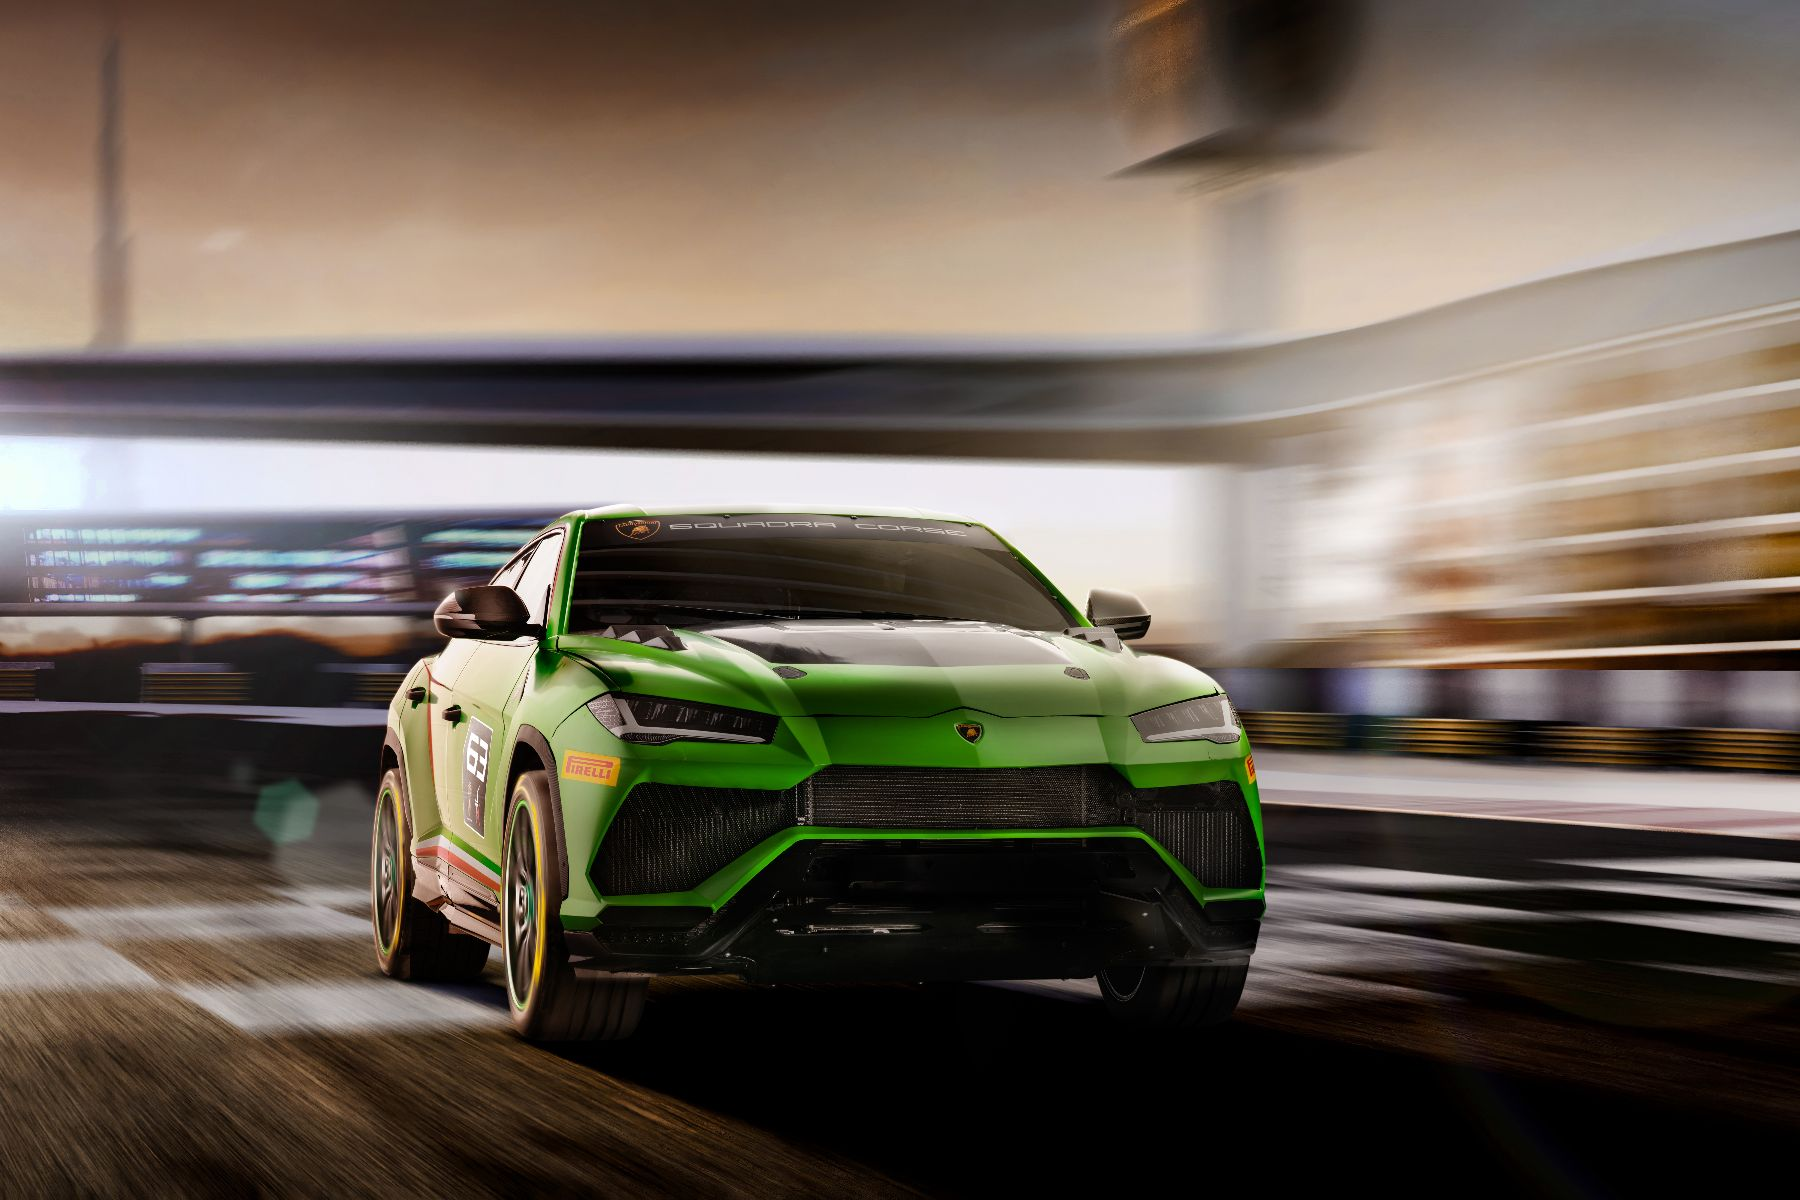 Lamborghini Is Sending The Urus Suv Racing In 2020 Motoring Research